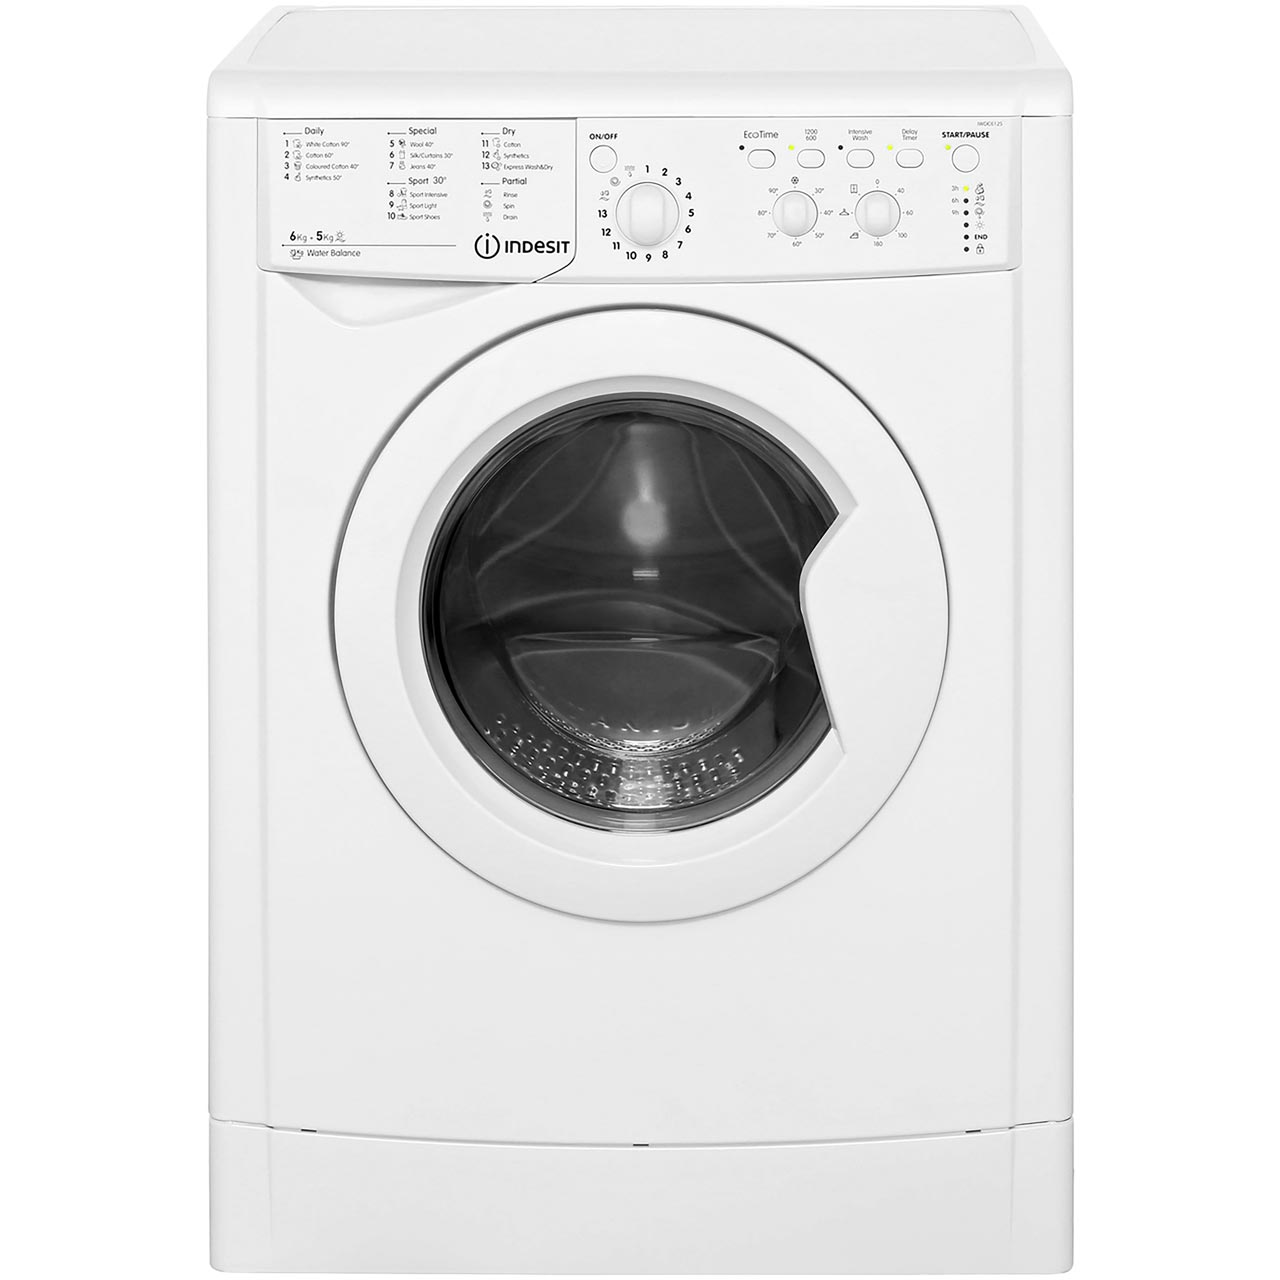 Indesit Iwdc 6125 Indesit Iwdc6125 Eco Time Free Standing 6kg Washer Dryer